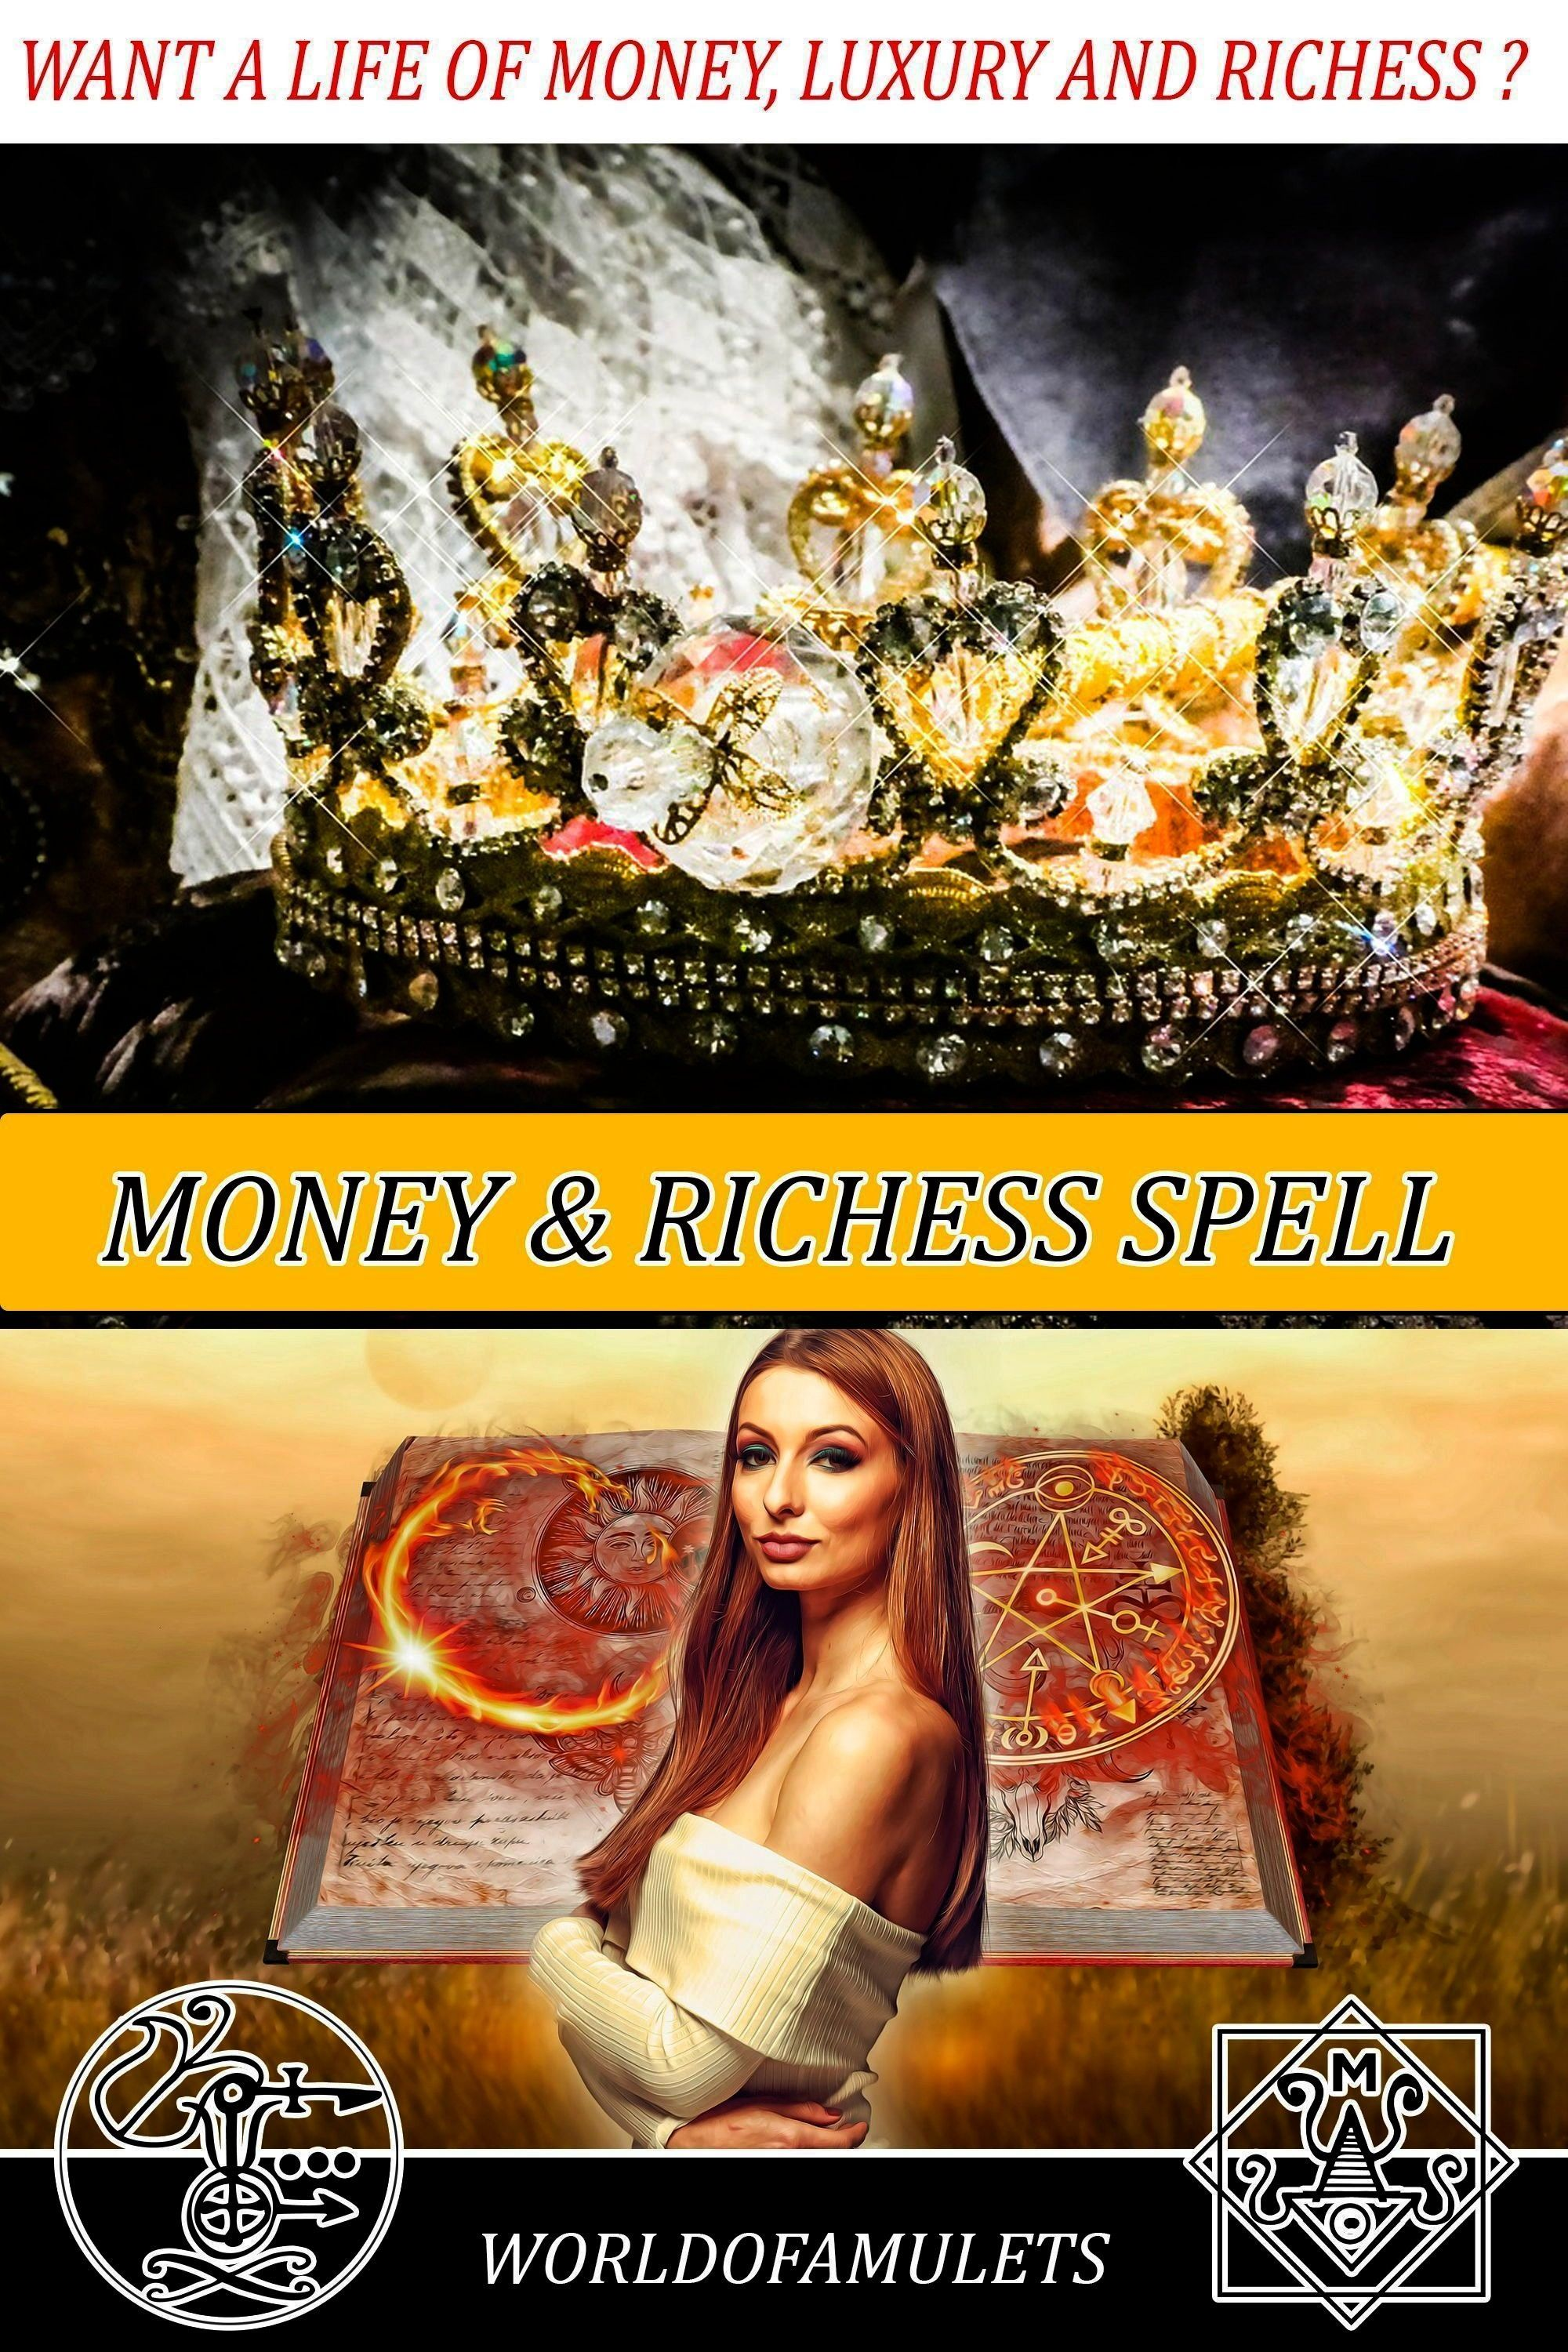 #moneyspells #witchcraft #moneyspell #vacations #expensive #wizardry #beginner #reviews #jewelry #richess #luxury #wealth #school #spells #spellWitchcraft Wealth and Money Spell with Baal School of witchcraft and Wizardry School Beginner Witchcraft Spells Want a life of richess, money, wealth, expensive jewelry, luxury cars and homes and dream vacations?  Our Money Spell can make this true. Check the reviews  Witchcraft Wealth and Money Spell with Baal School of witchcraft and Wizardry School Be #moneyspells